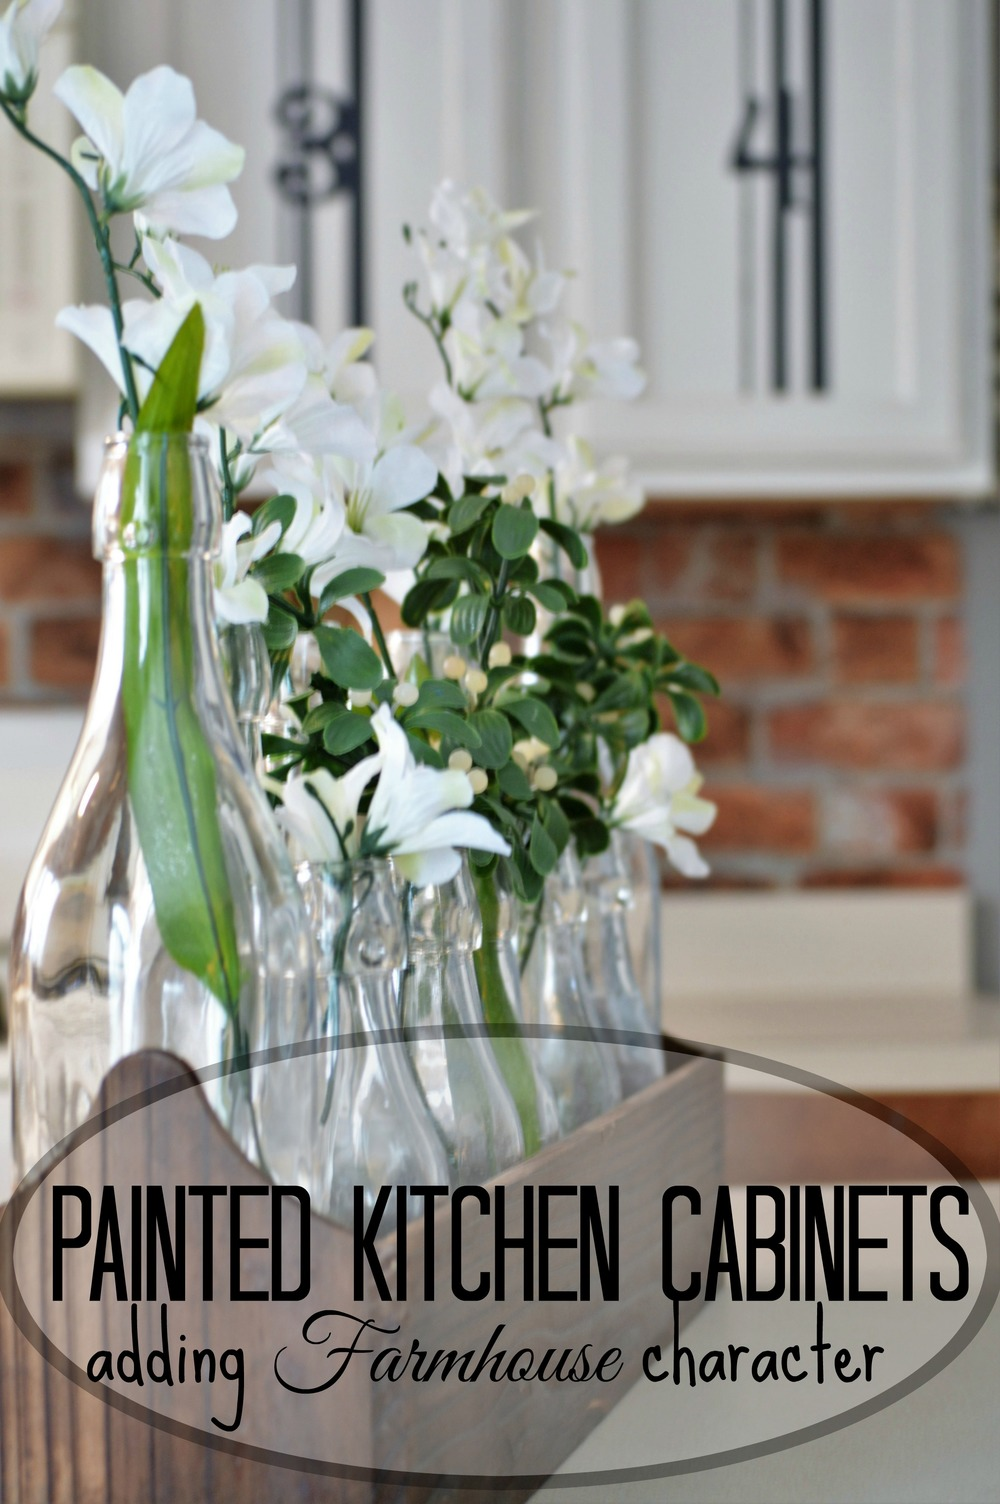 PaintedKitchenCabinetsFarmhouse